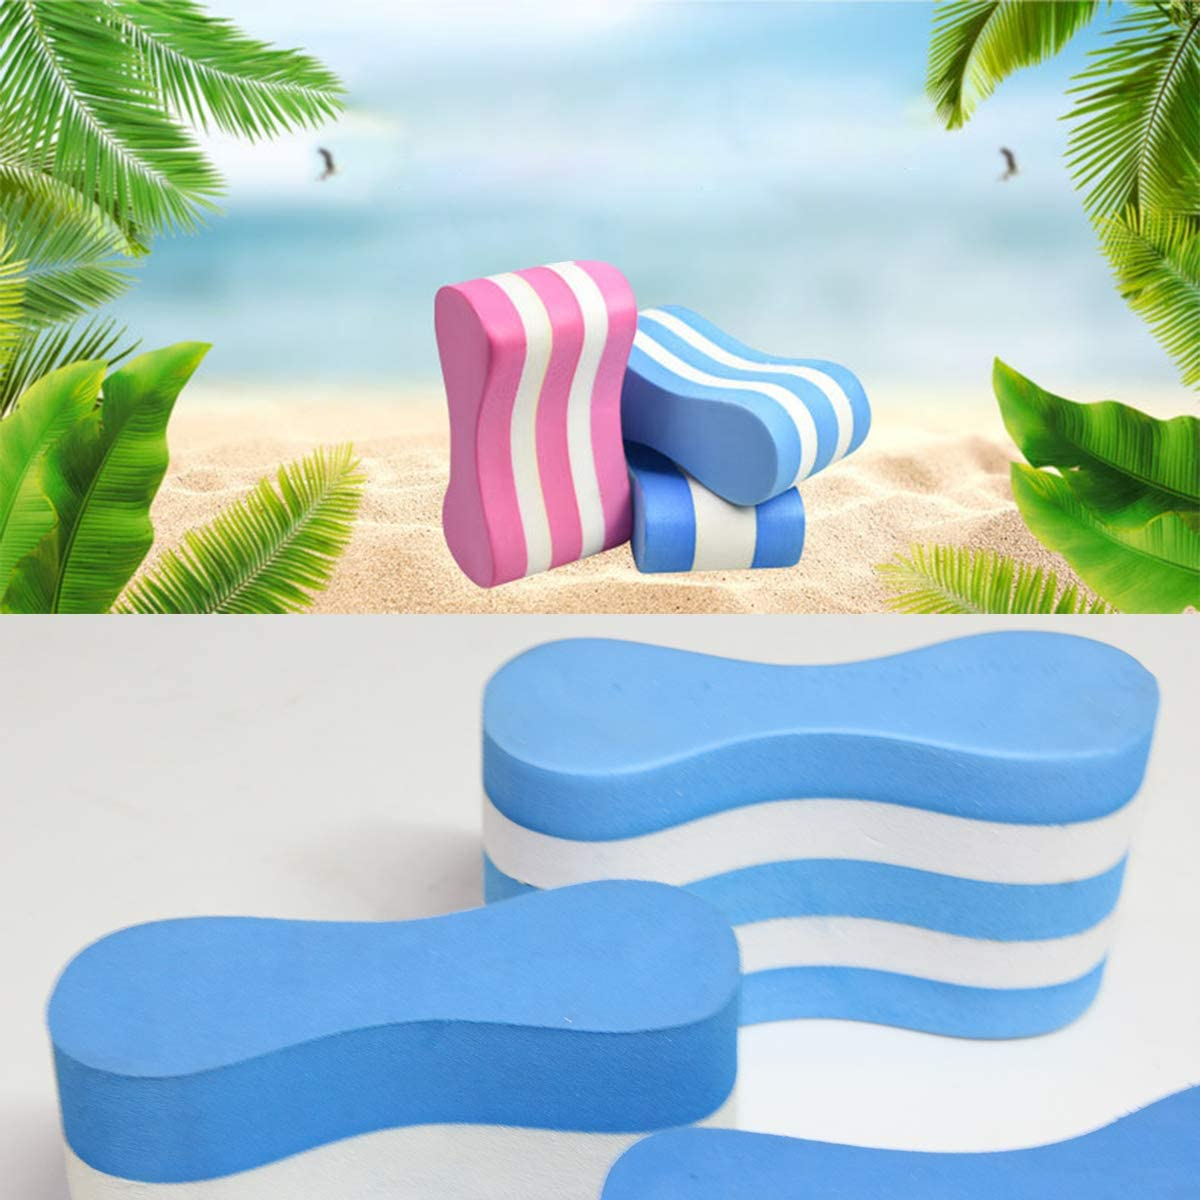 Pink Yagosodee Swim Training Aid Pull Buoy for Upper Body Strength Pool Swimming Aid Float Kickboard for Adults Children